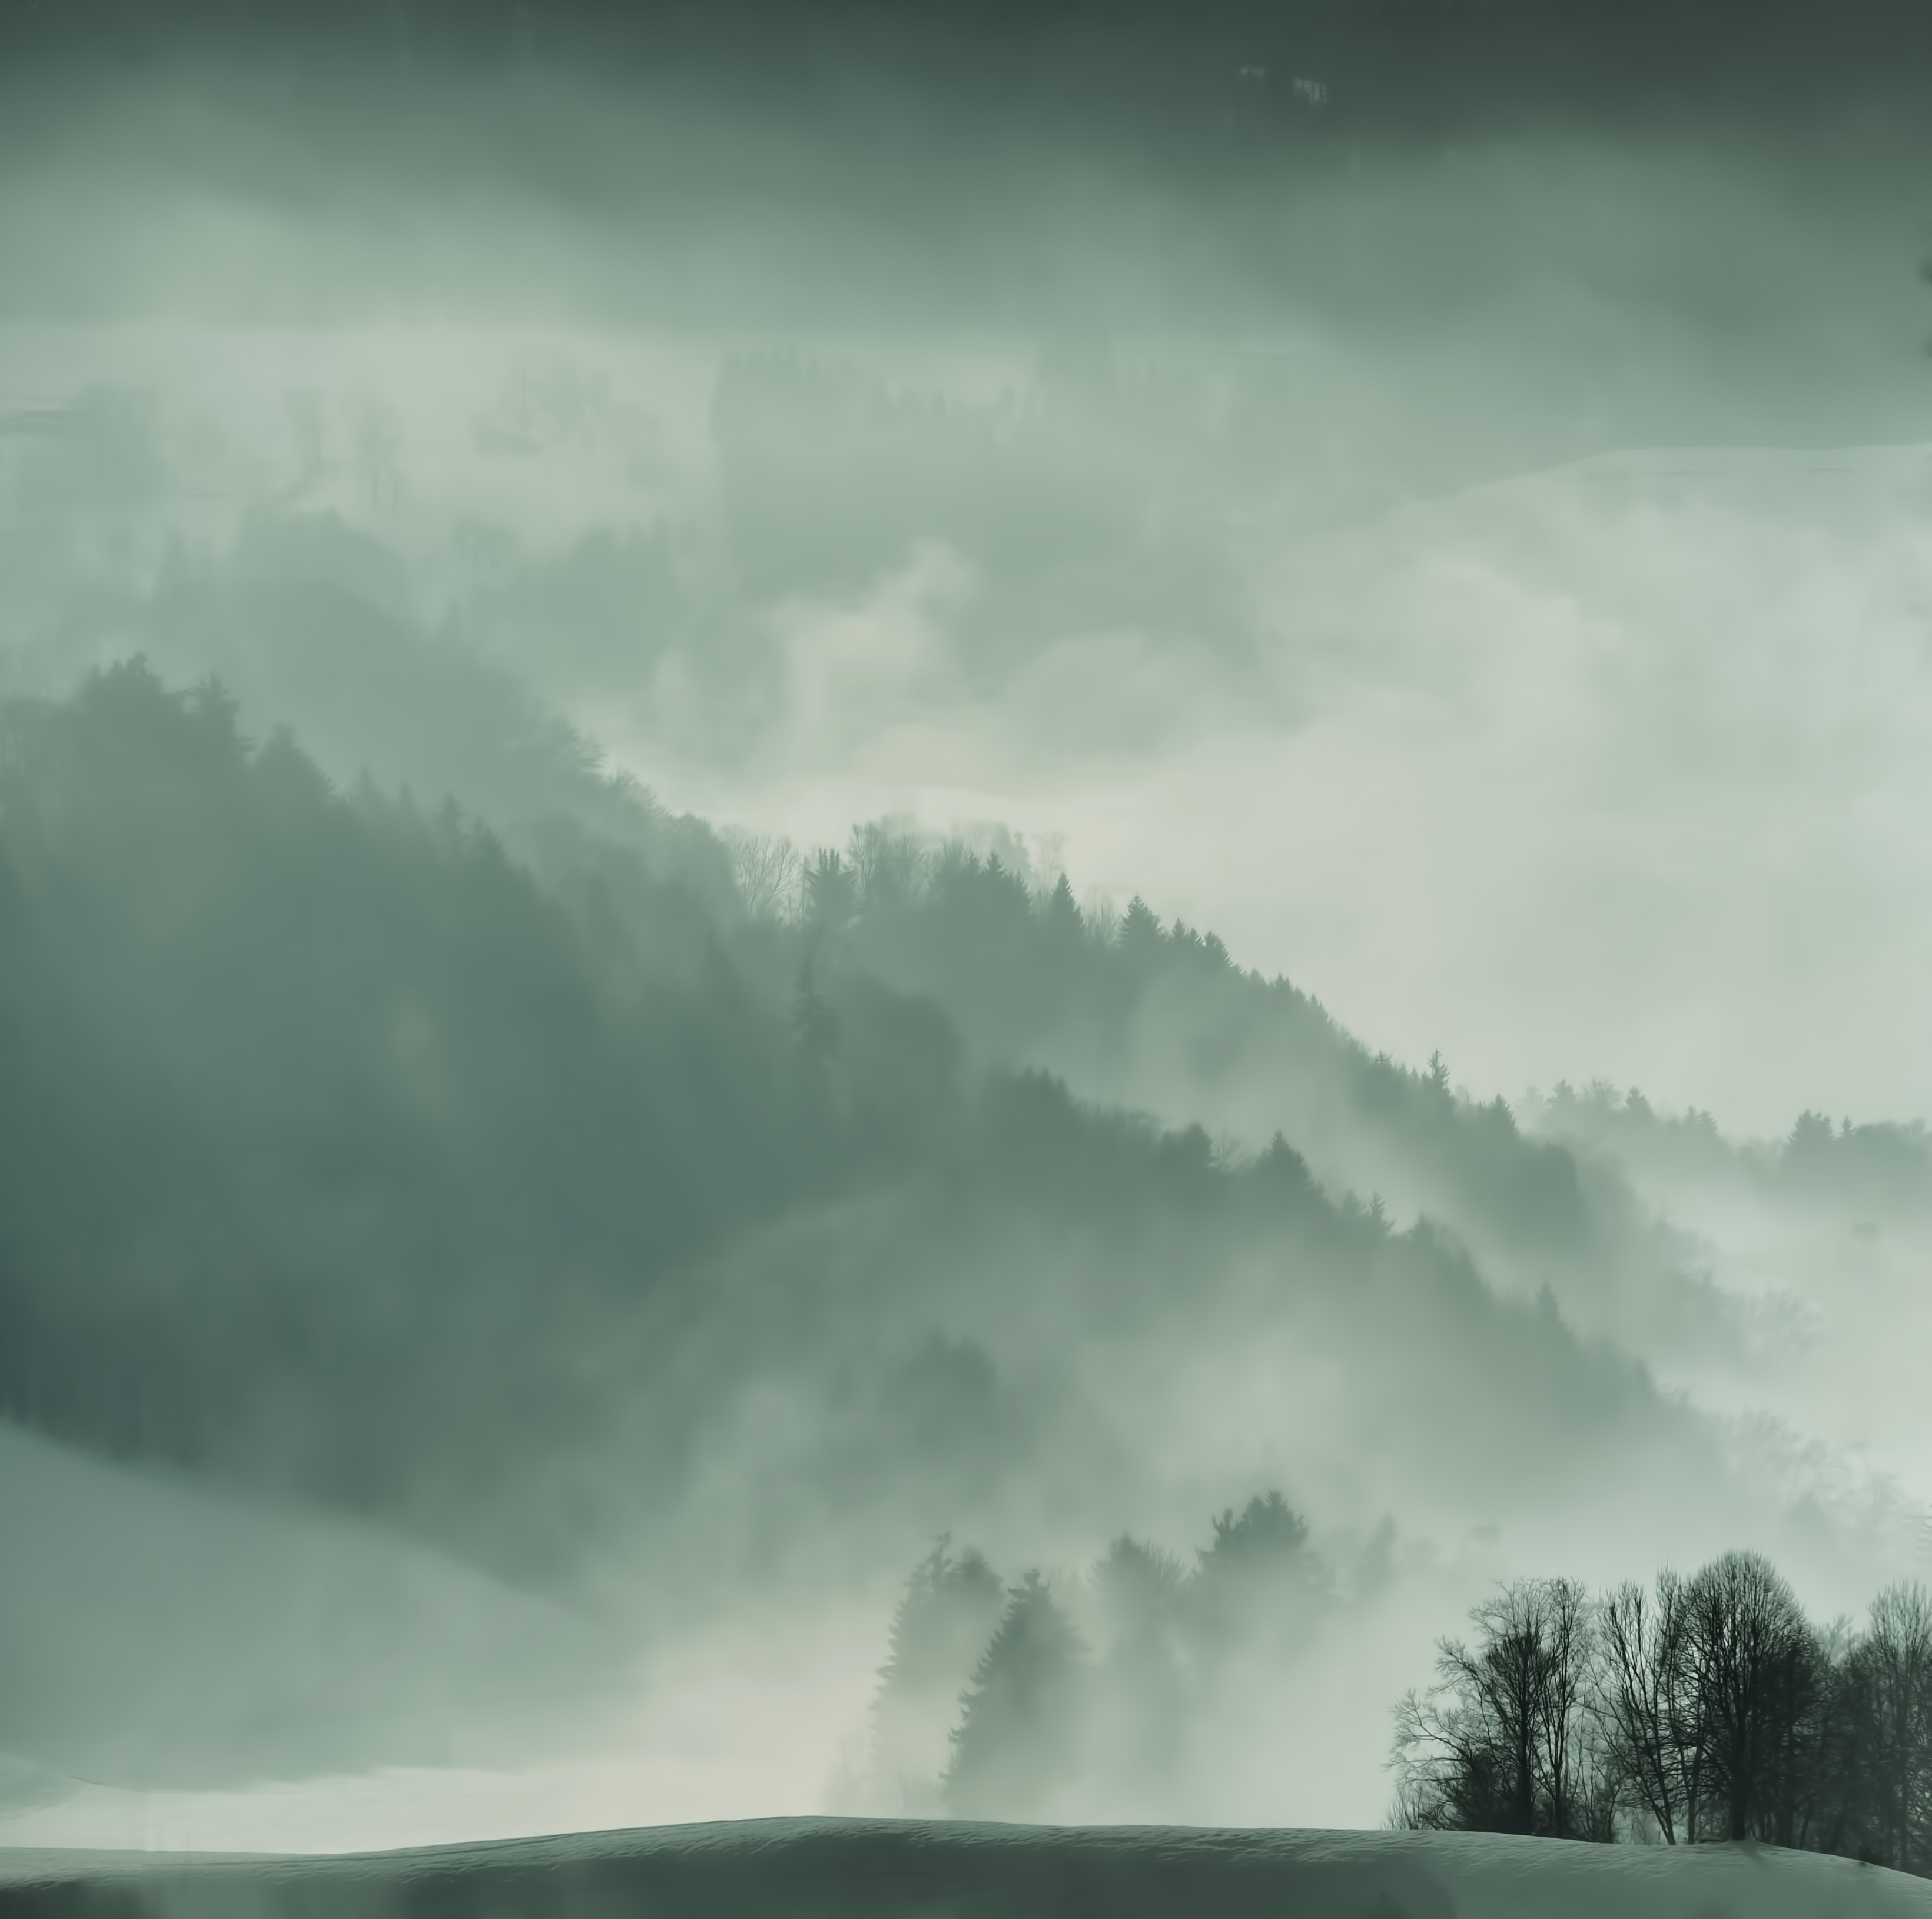 A thick mist obscuring forested hills